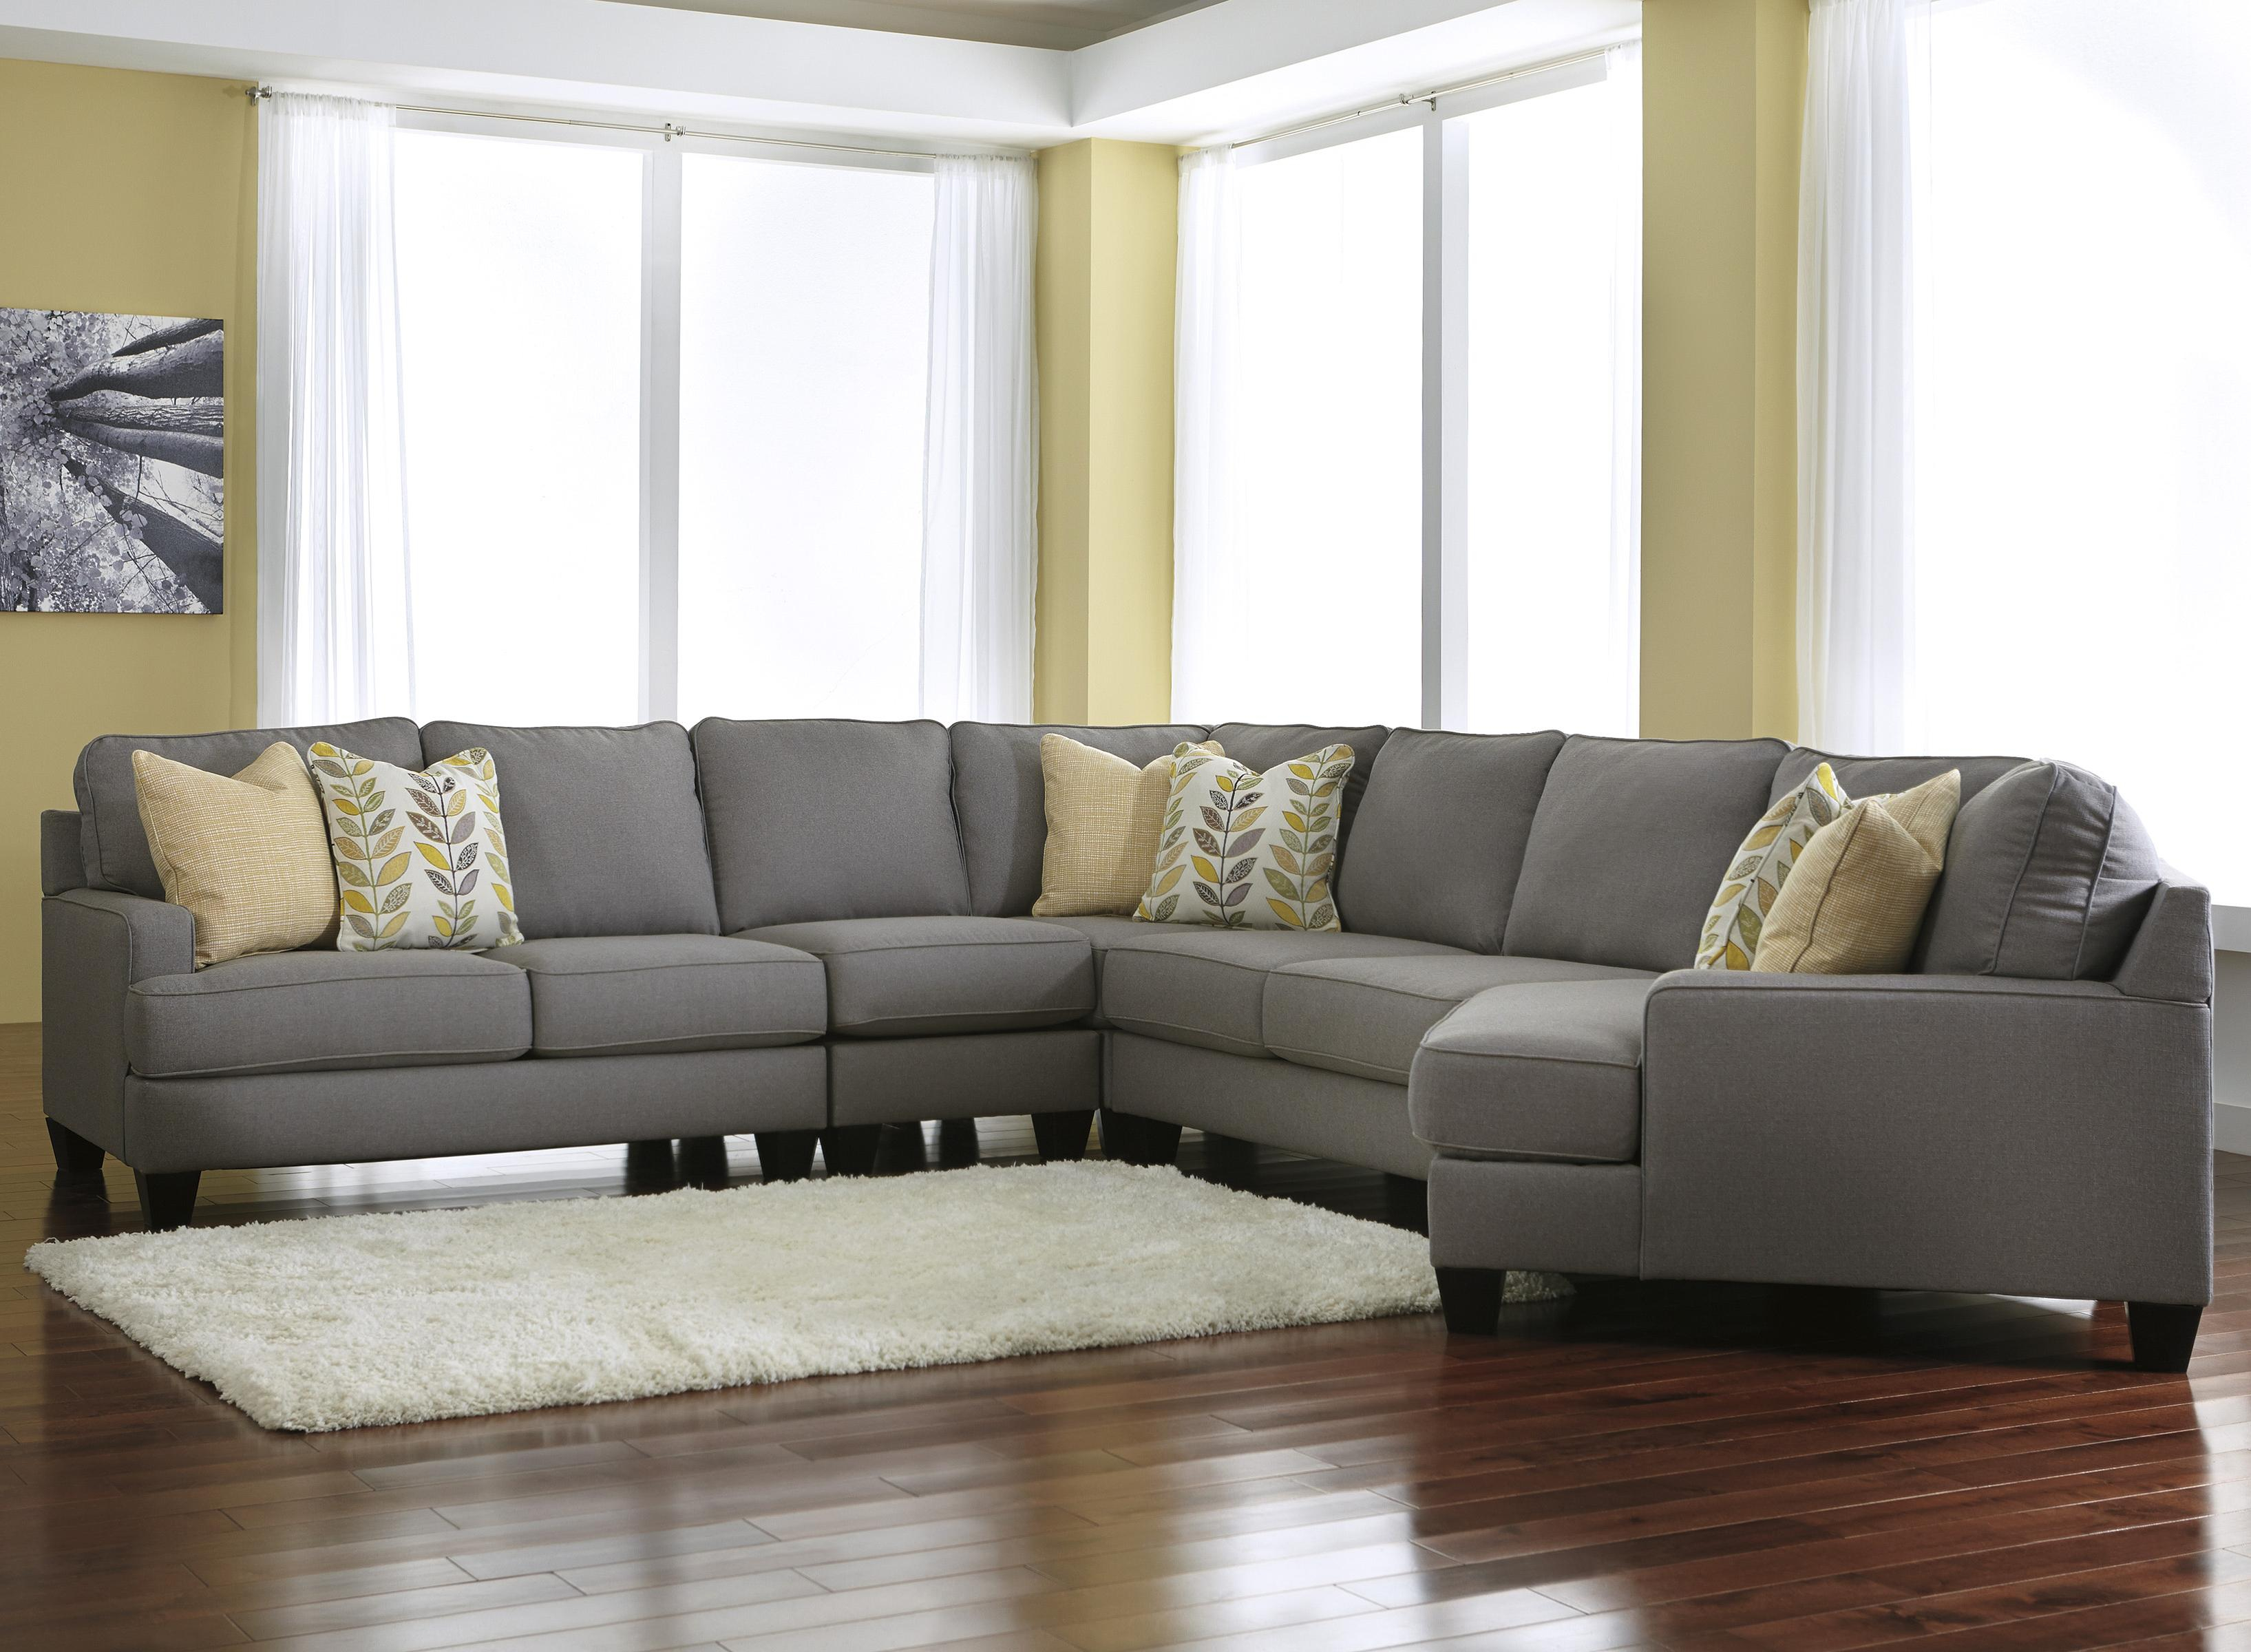 Signature Design Ashley Chamberly Alloy Modern 5 Piece throughout 13 Clever Initiatives of How to Improve 5 Piece Living Room Set